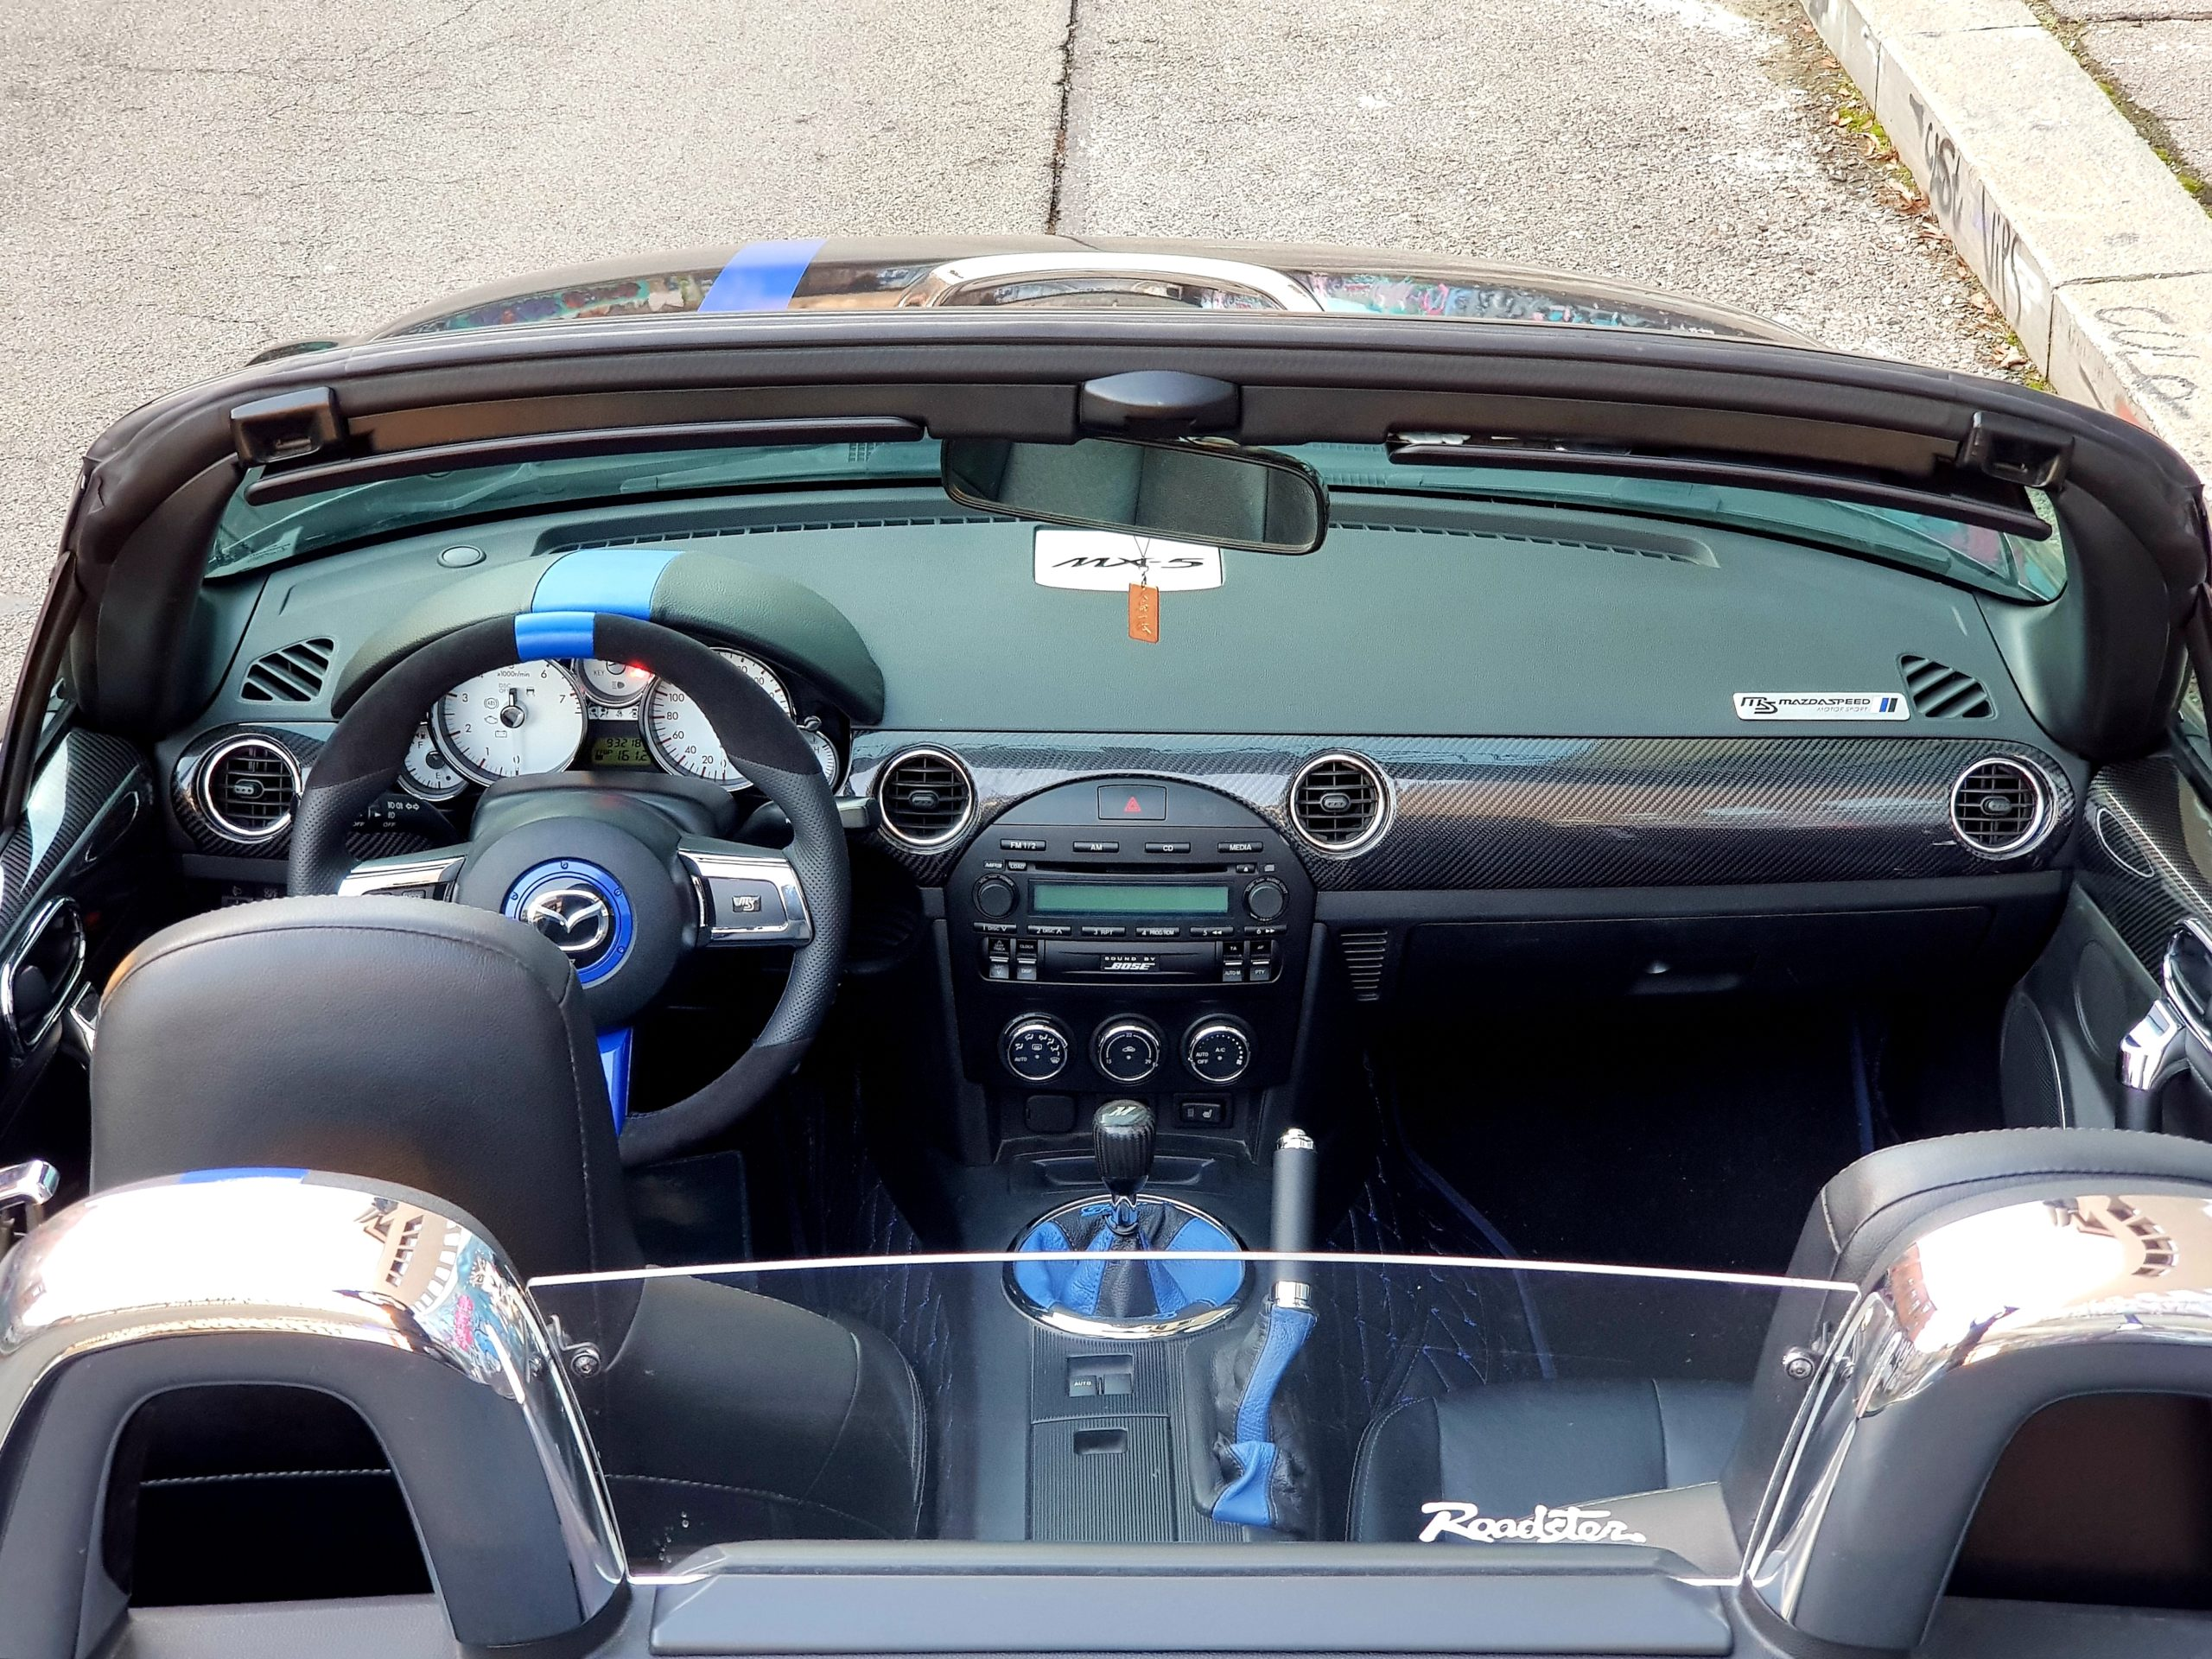 Lhd Dash Trims For Miata Nc Mk3 The Ultimate Resource For Mazda Miata Parts